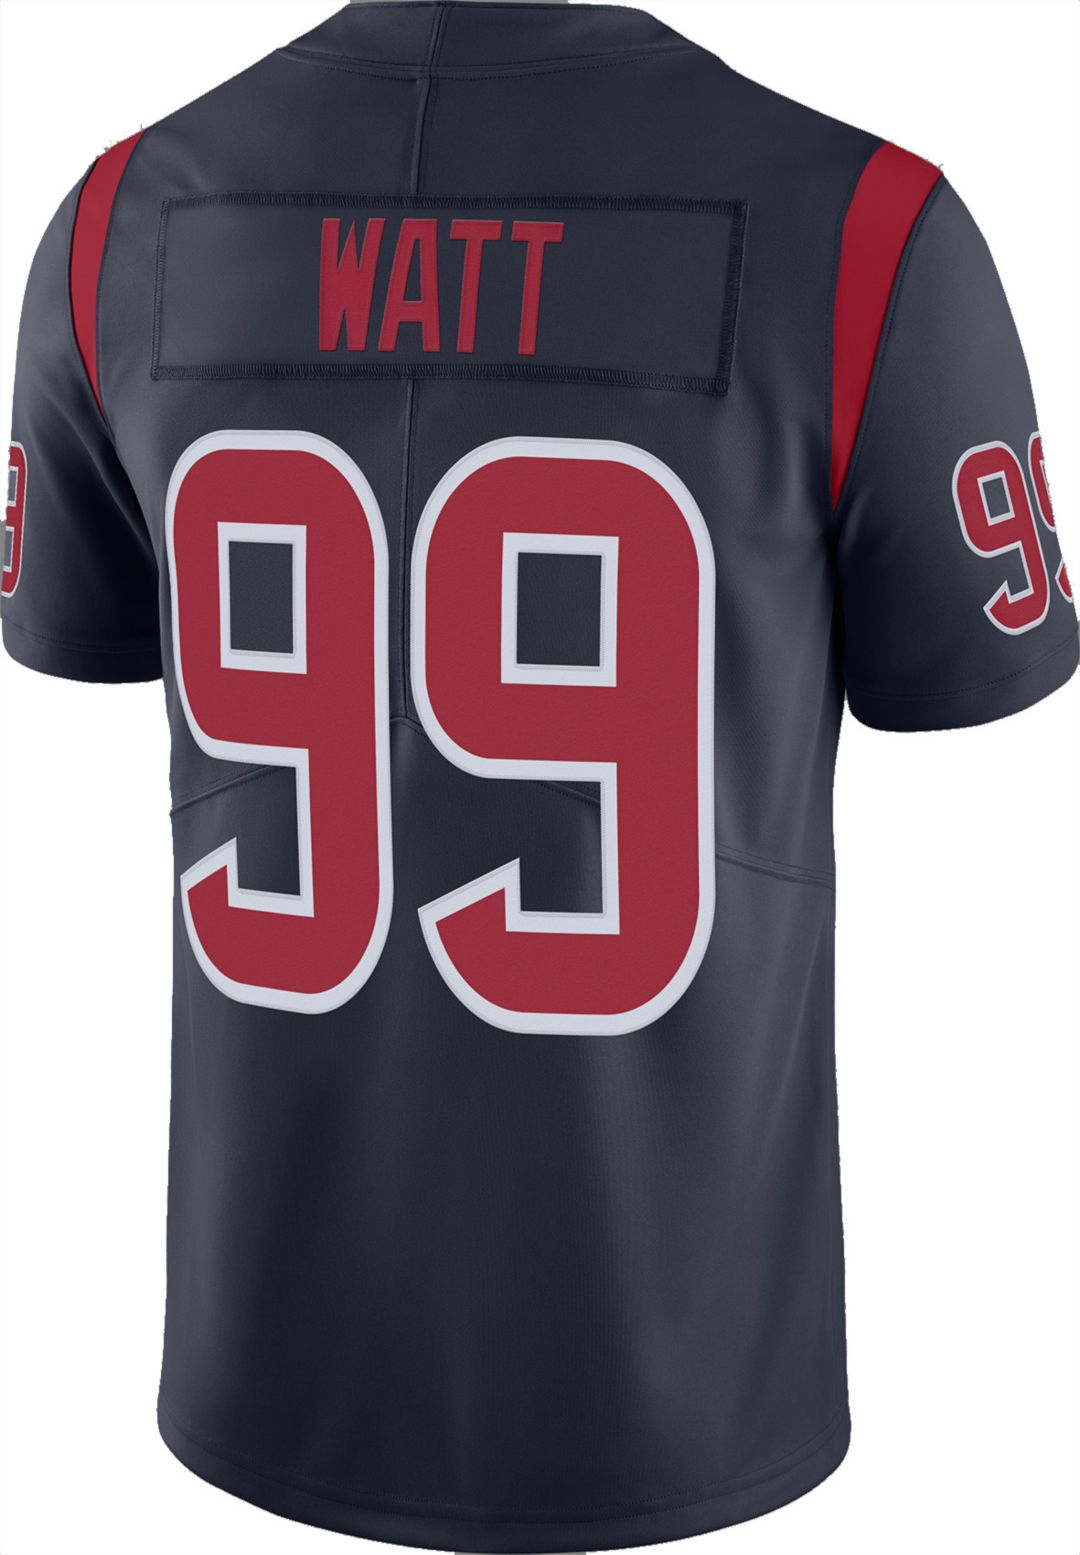 super popular f73a5 56f38 Nike Men's Color Rush Limited Jersey Houston Texans J.J. Watt #99